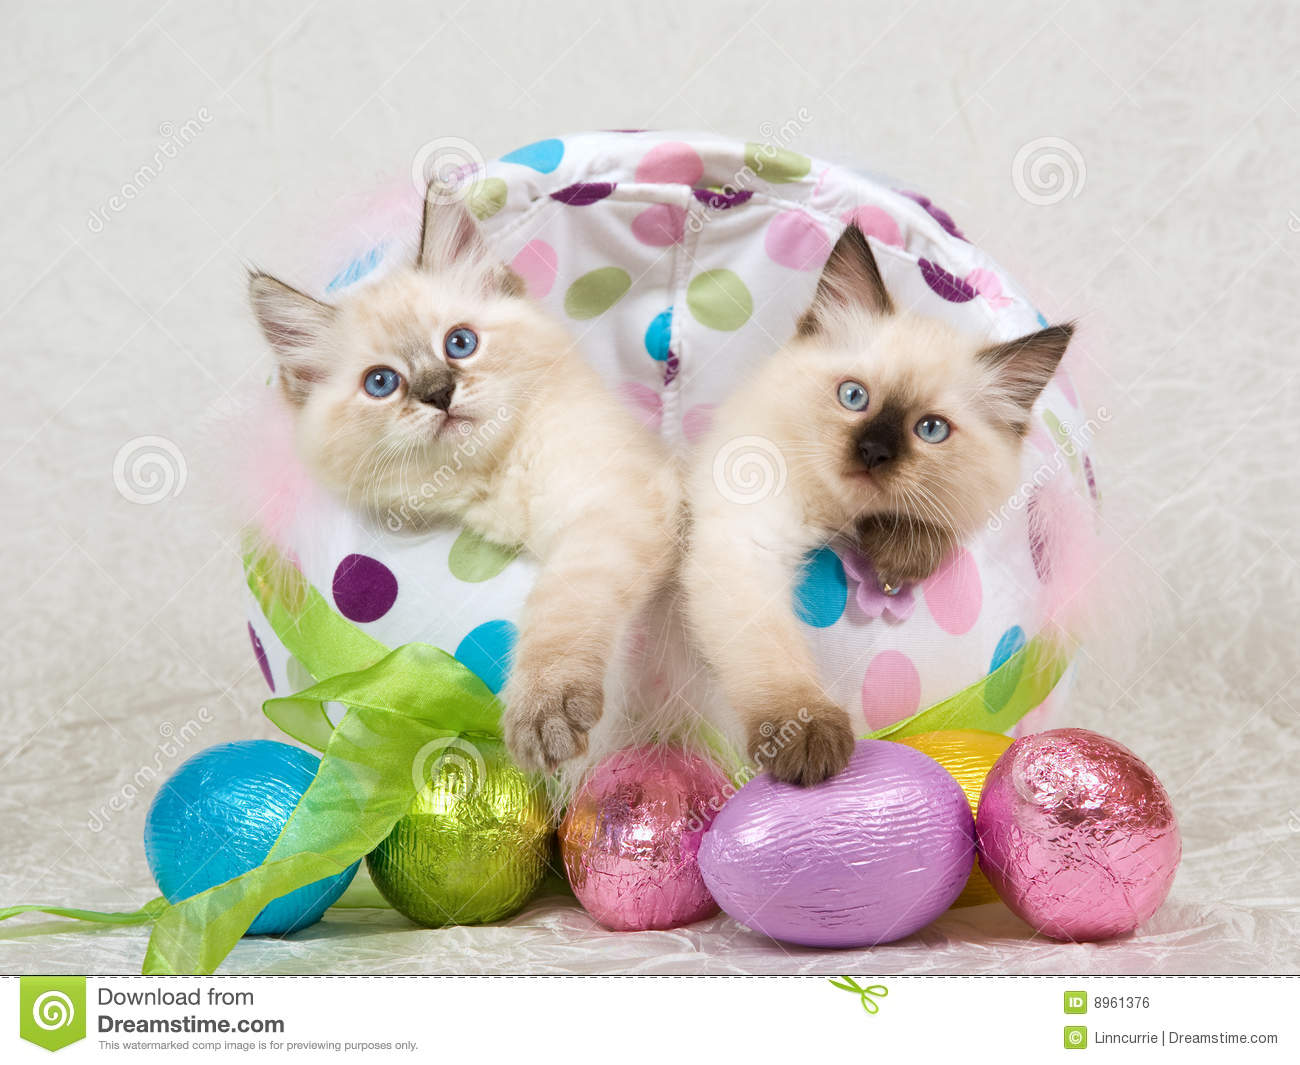 easter backgrounds cat images - photo #23